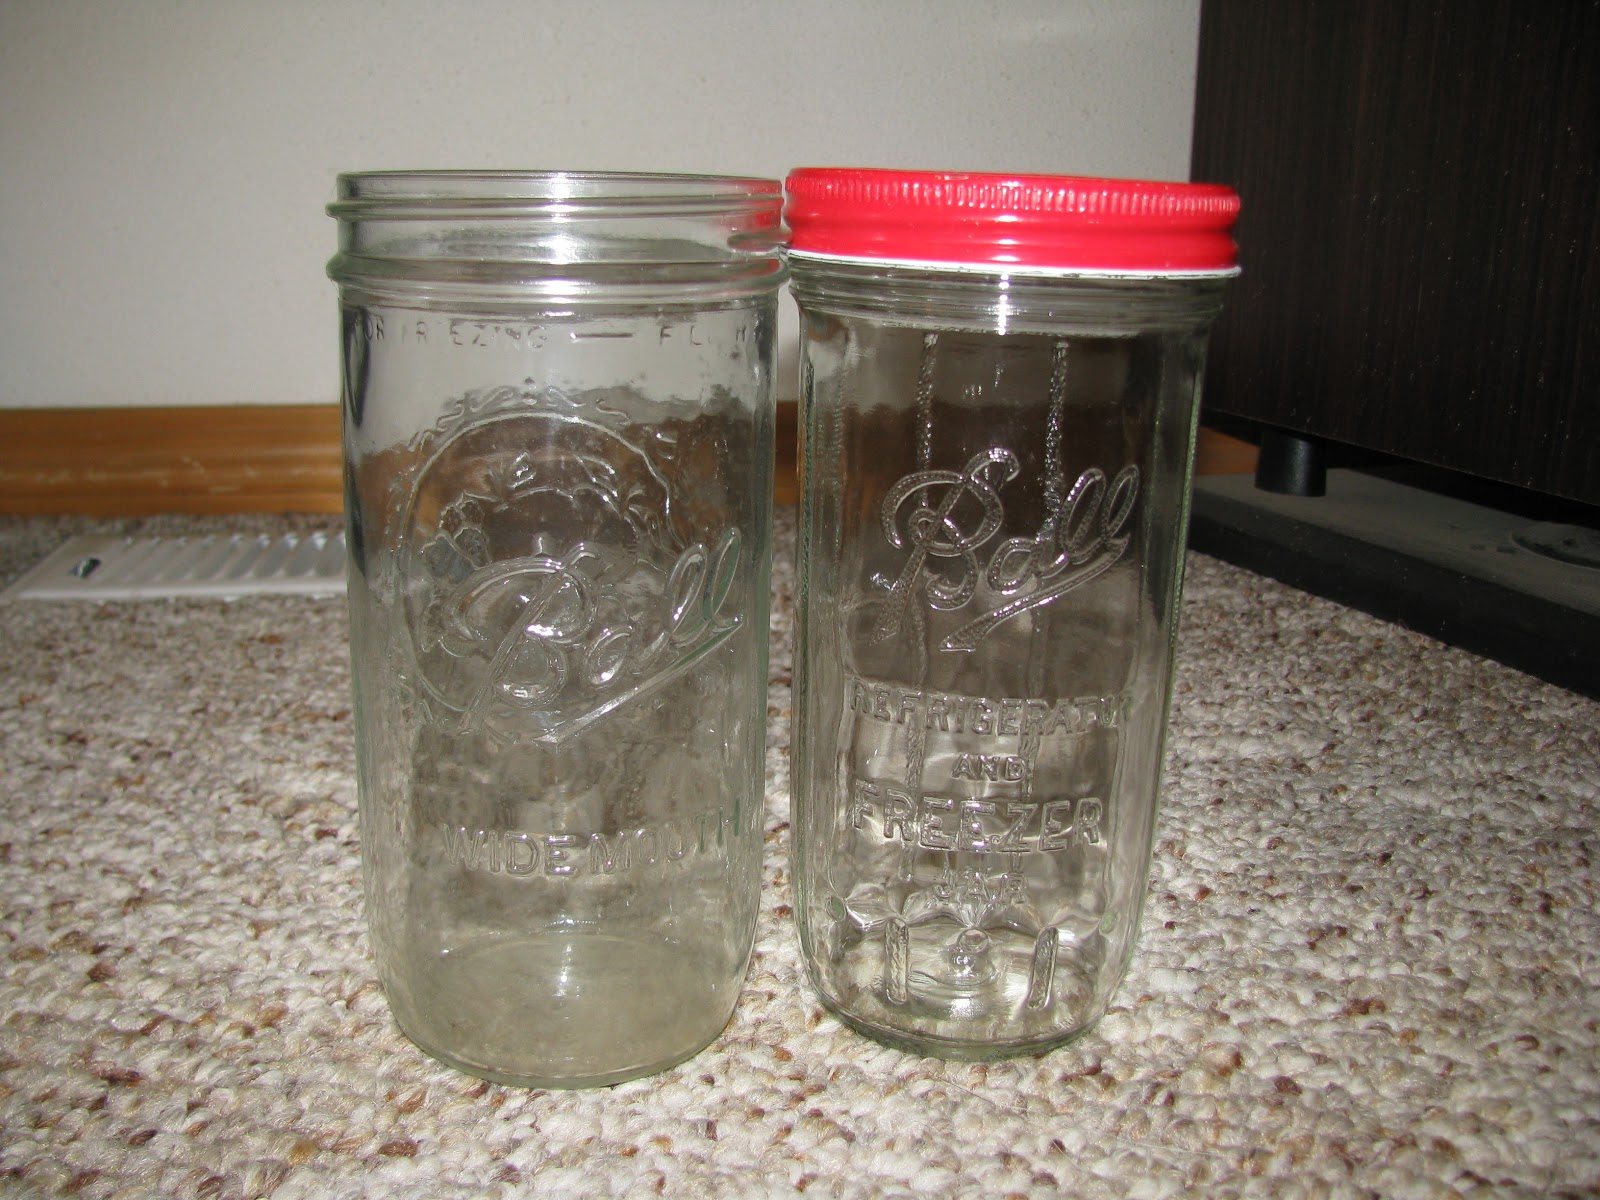 ball freezer jars. Make Sure What You Are Using And/or Buying Is Actually A Canning Jar. Pictured Above Two Ball Freezer Jars That Were Only Manufactured For Short Period